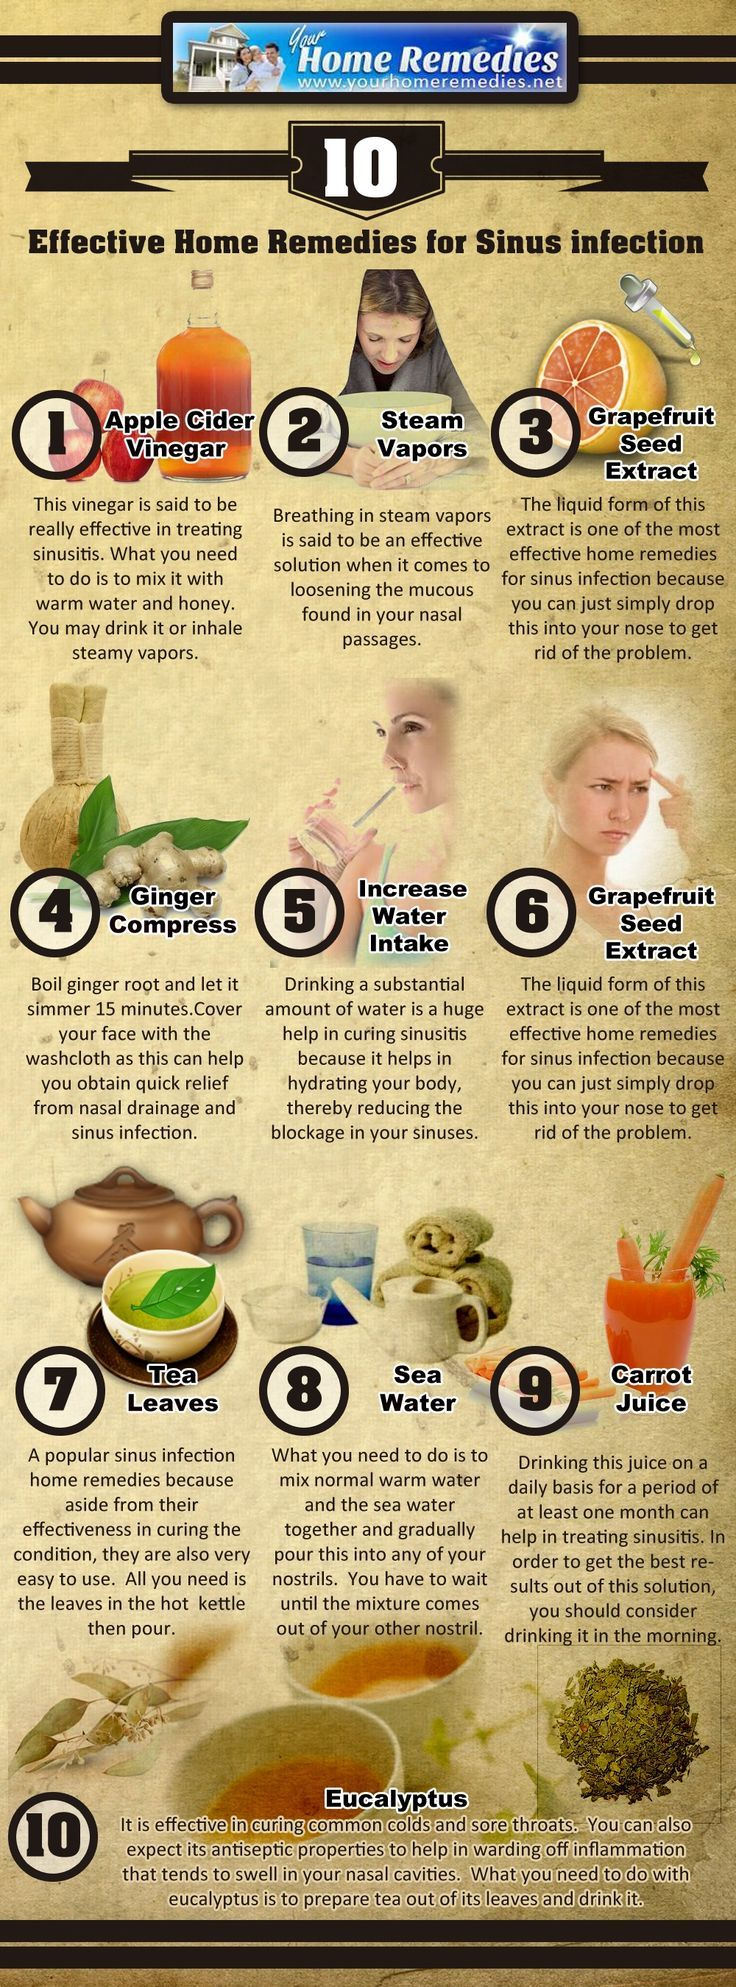 Natural Remedies For Sinus Pressure When Pregnant